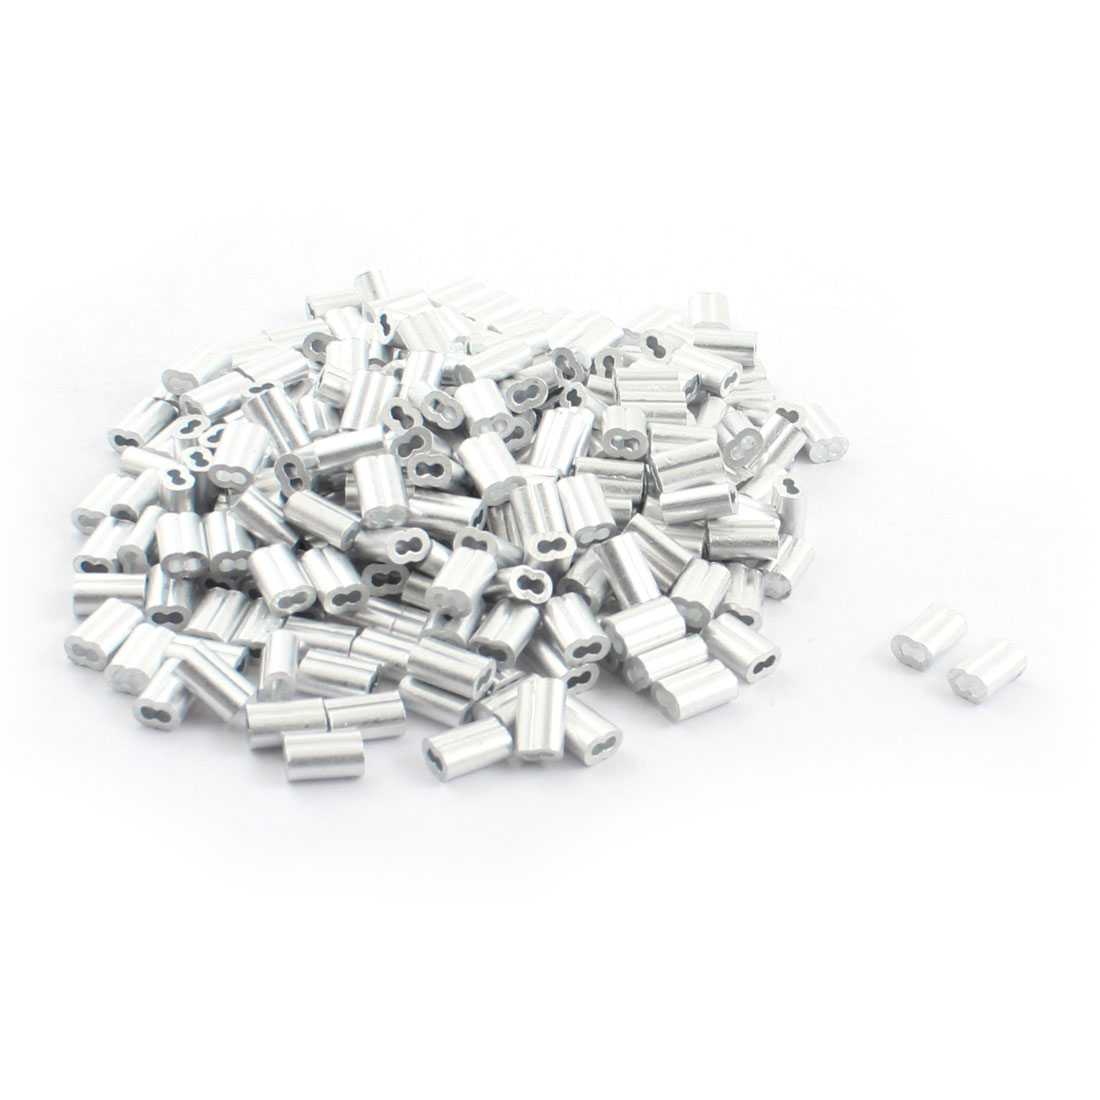 "250Pcs 2/25""x 3/8"" Aluminum Hourglass Ferrules Sleeve Crimp for 1.5mm Wire Rope"